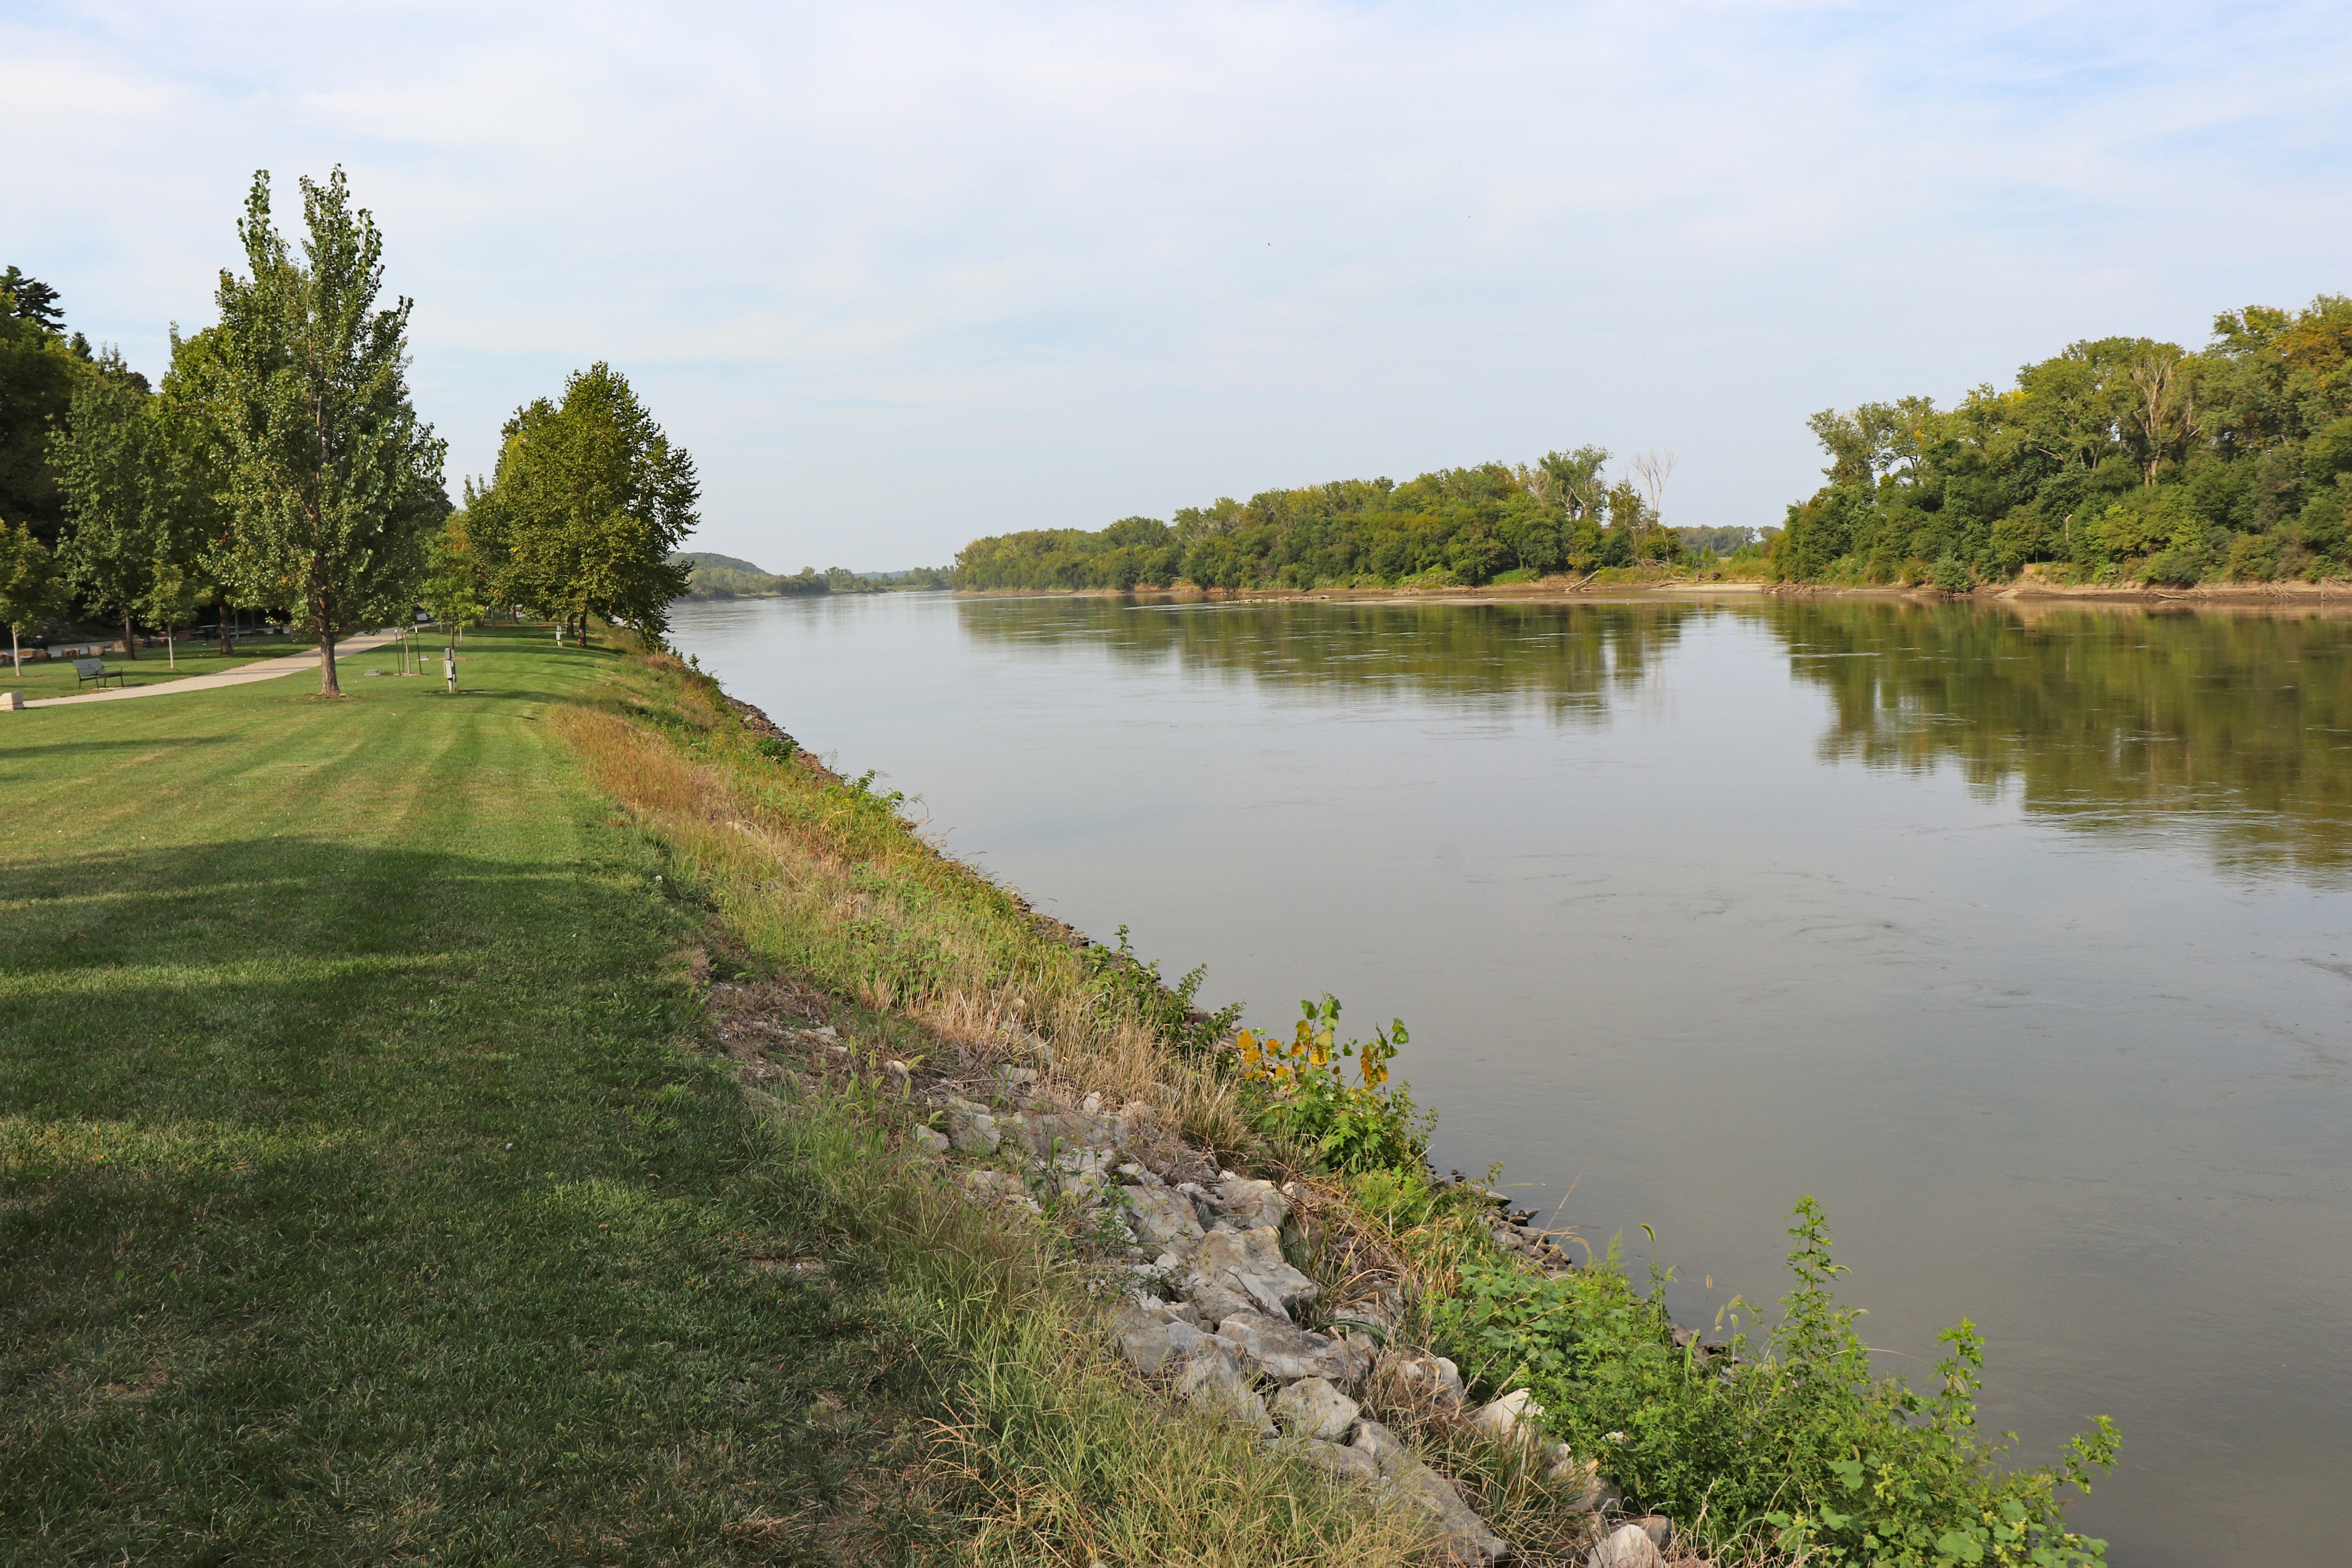 Pathway along the Missouri River upstream from Riverfront Park, Atchison.